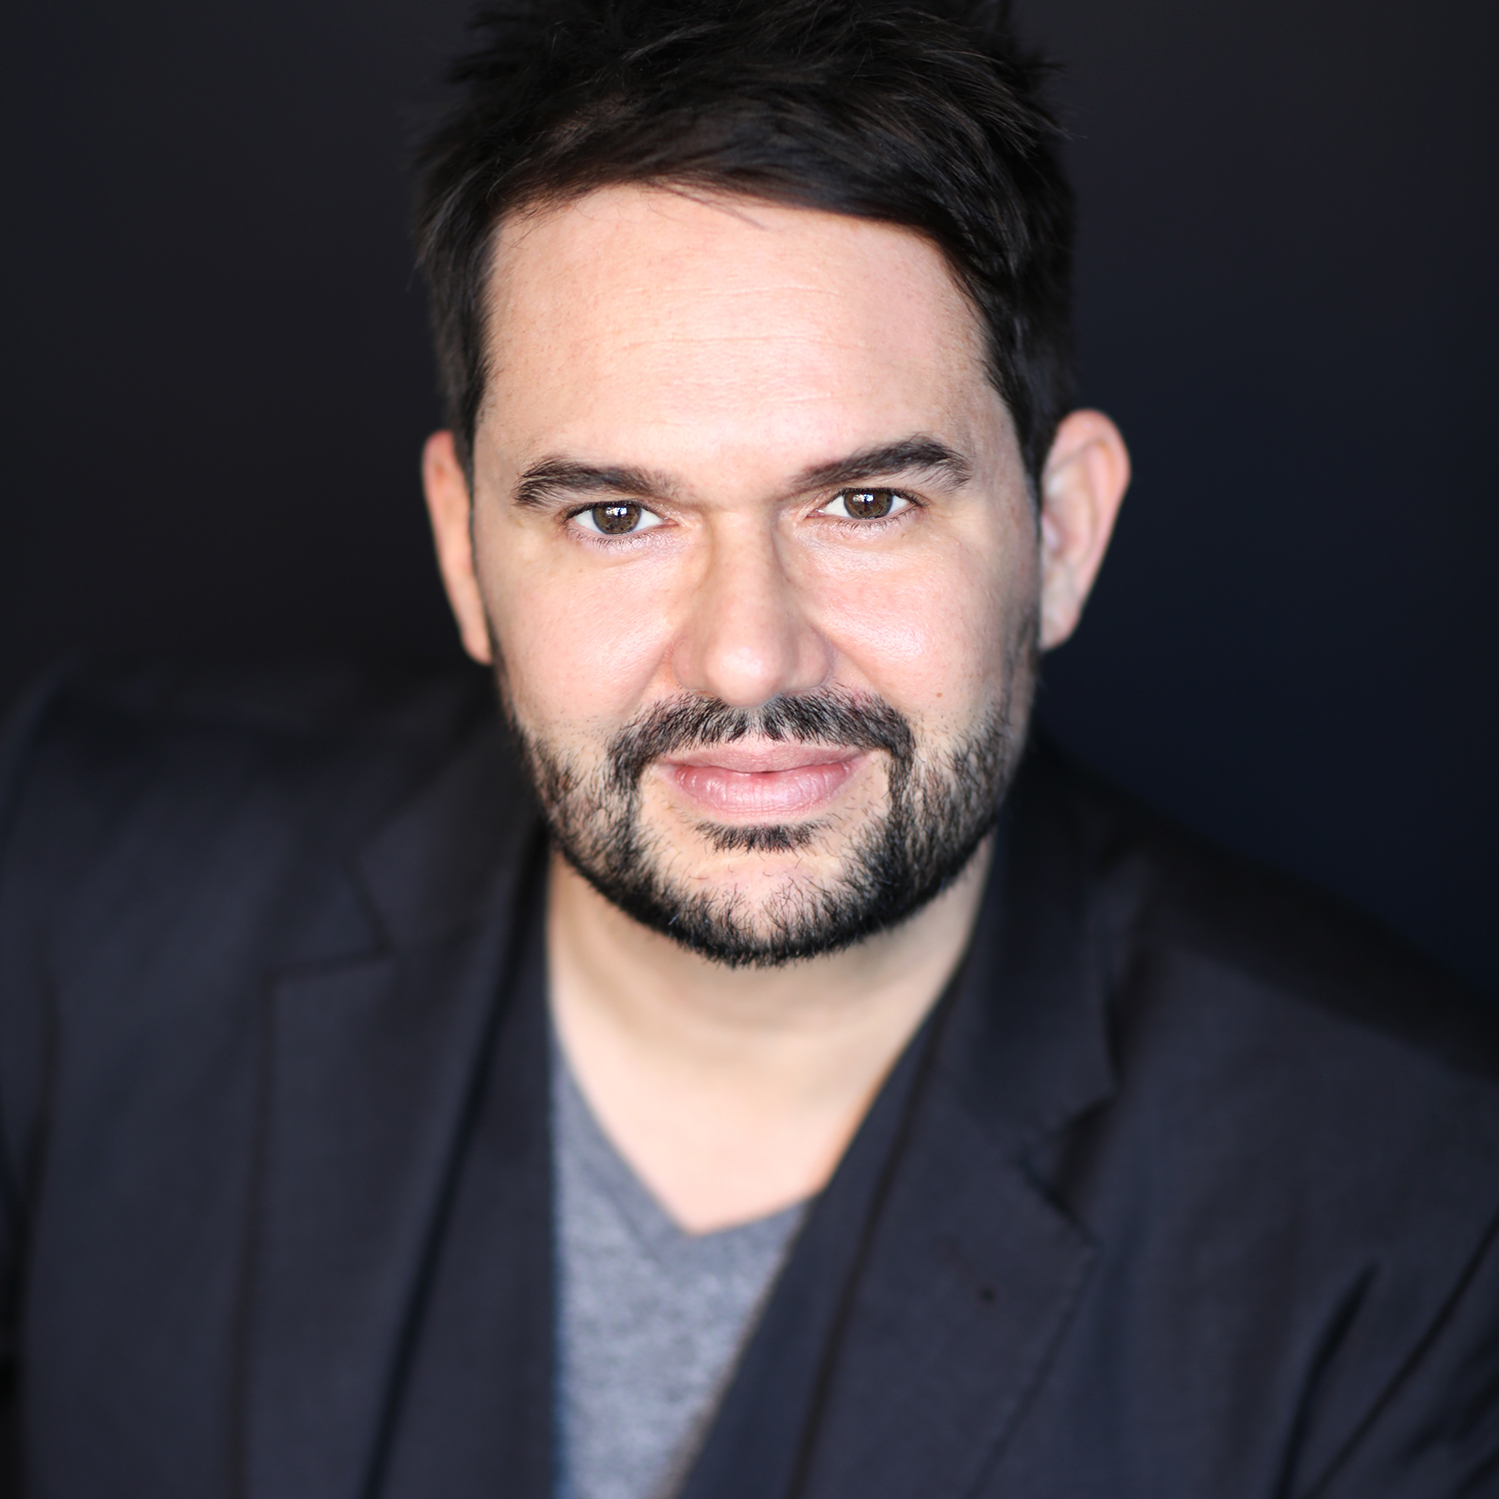 """Digital Director - Damian Nixey    Bio:  Damian is our Digital guru who is also an Actor and a Film Addict. Forget IMDB, this guy is """"Information Movies Damian's Brain"""". Damian has supported the making of several movies including """"The Babadook"""", he has acted in Communicado's """"The Steven Shuttleworth Story"""", """"Hercules: The Legendary Journeys"""", """"Young Hercules"""", numerous other small budget films and has produced """"Other World"""" among many others that we don't have room to list.   Cause:  Alzheimers awareness   Didn't need to know:  Likes coffee. Lots."""